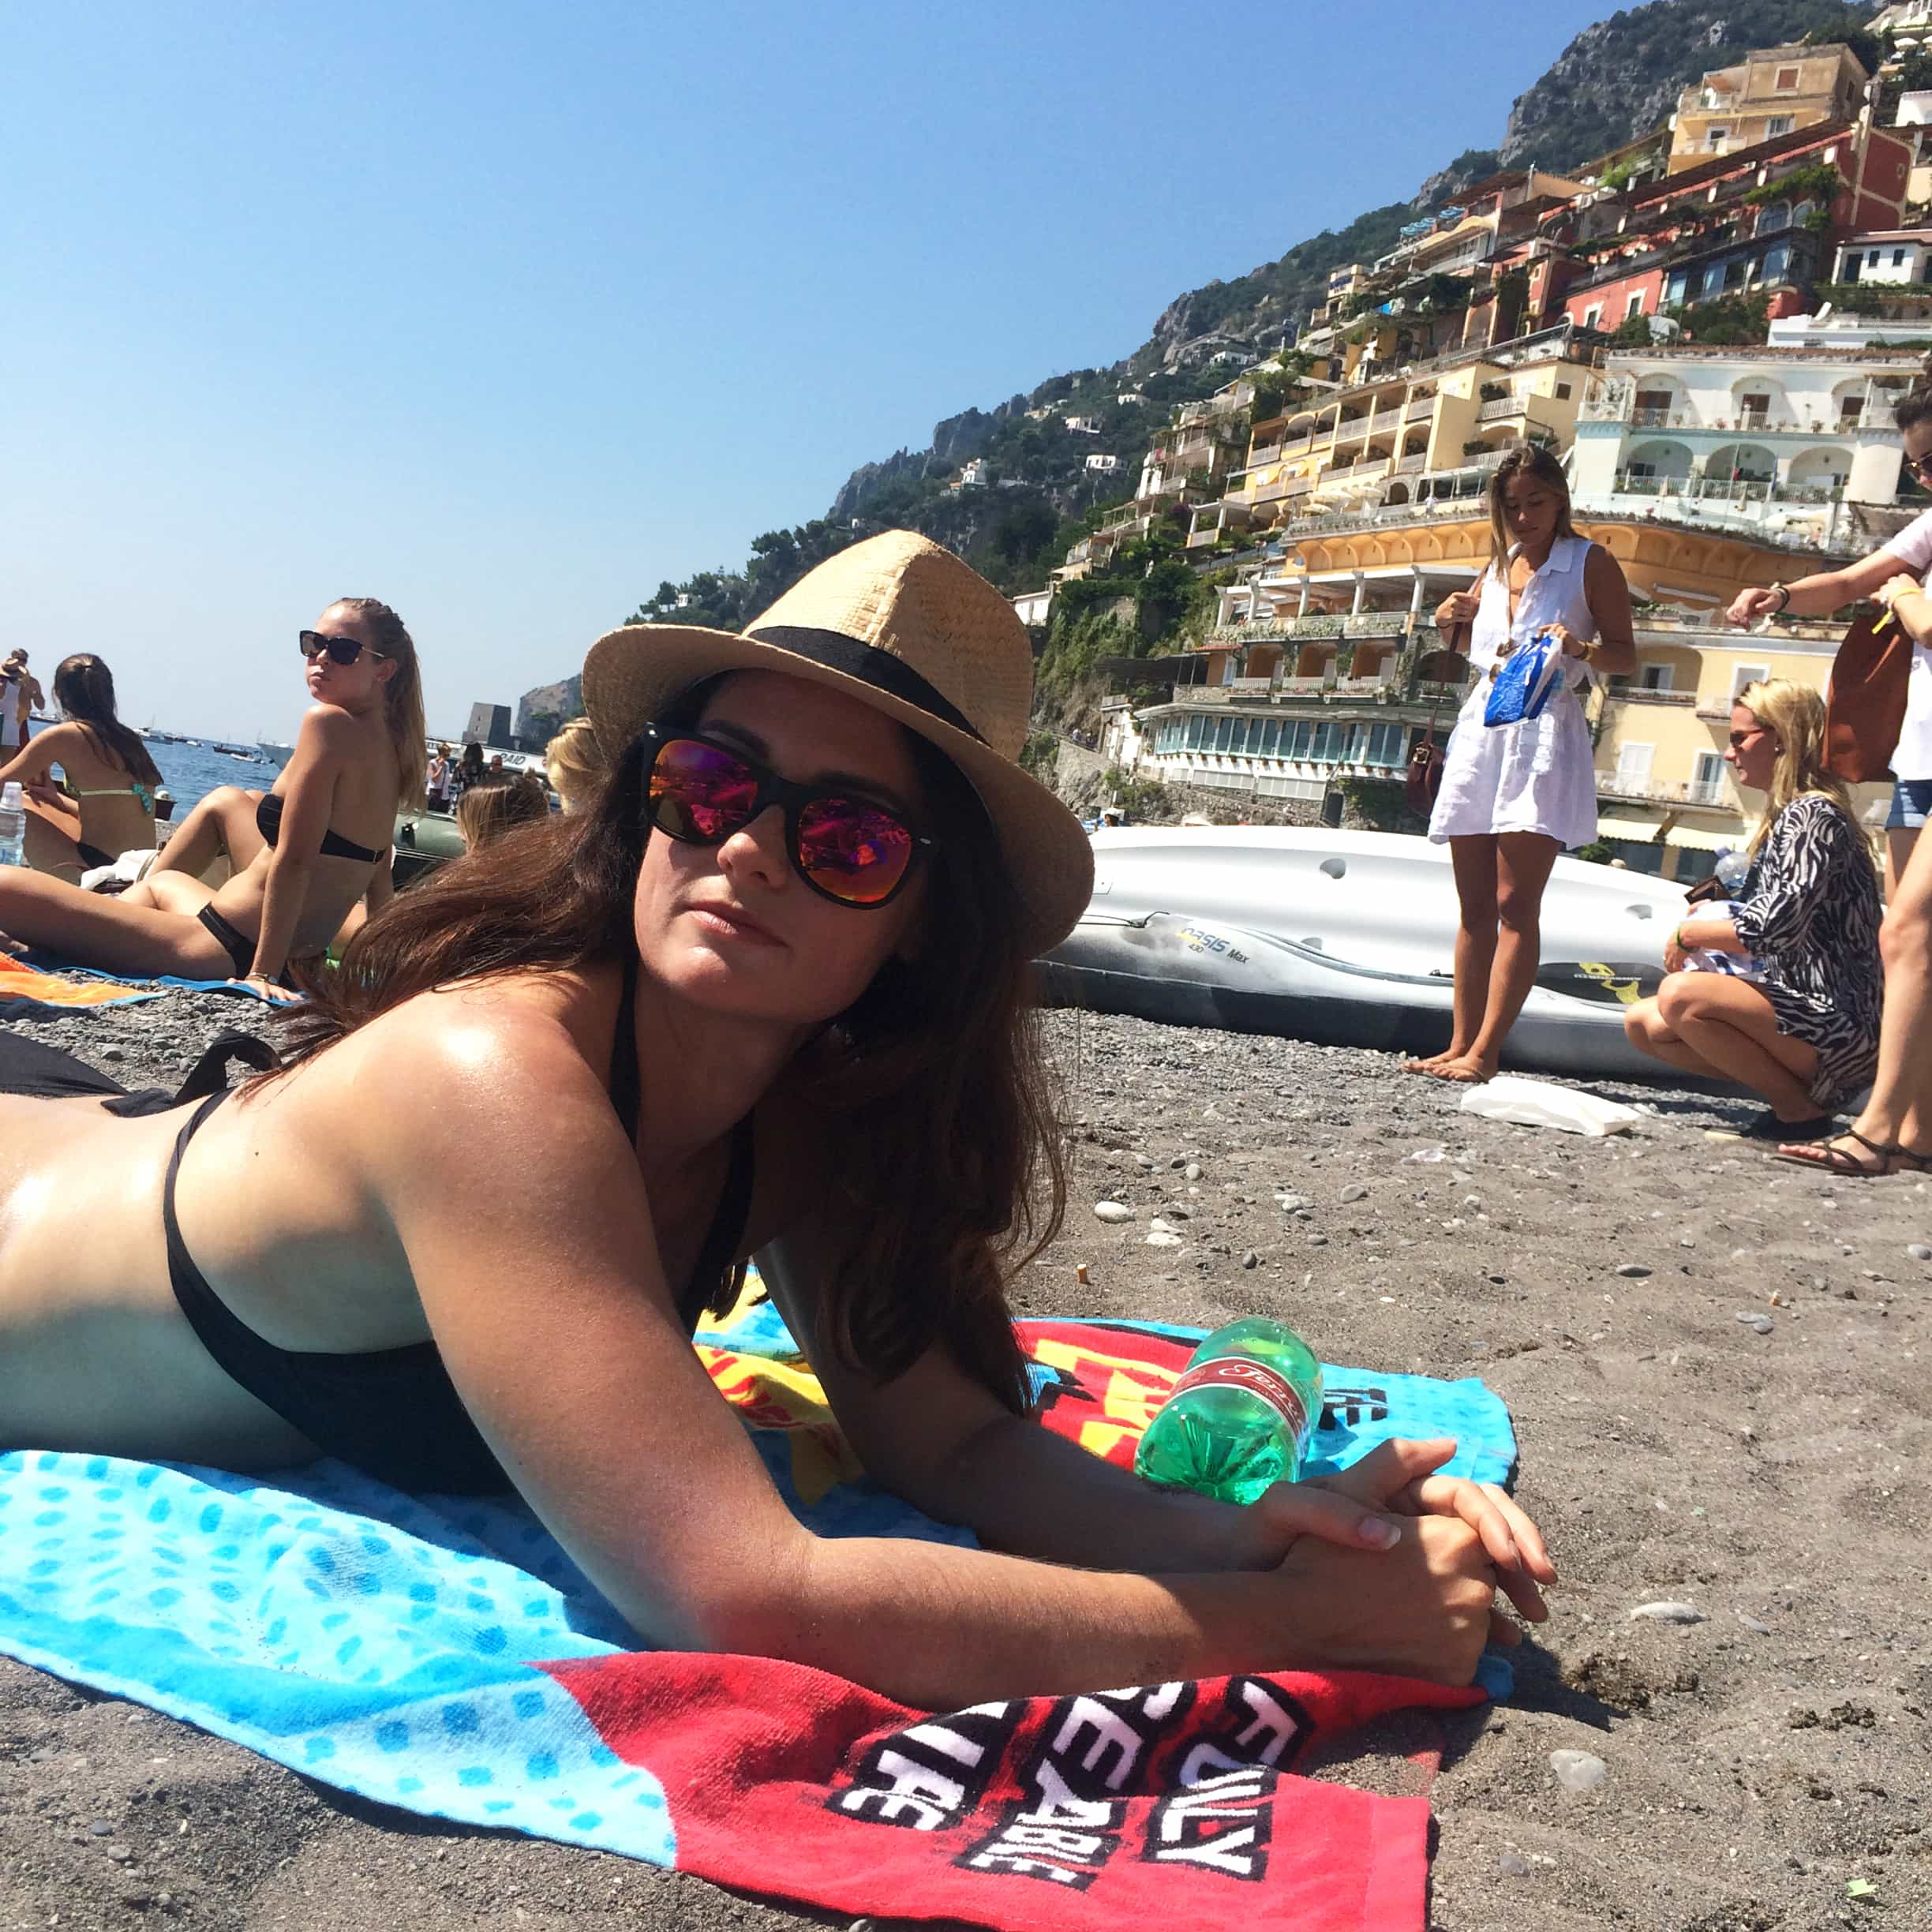 Me lounging on the black sand beach in Positano | LetsEatCake.com